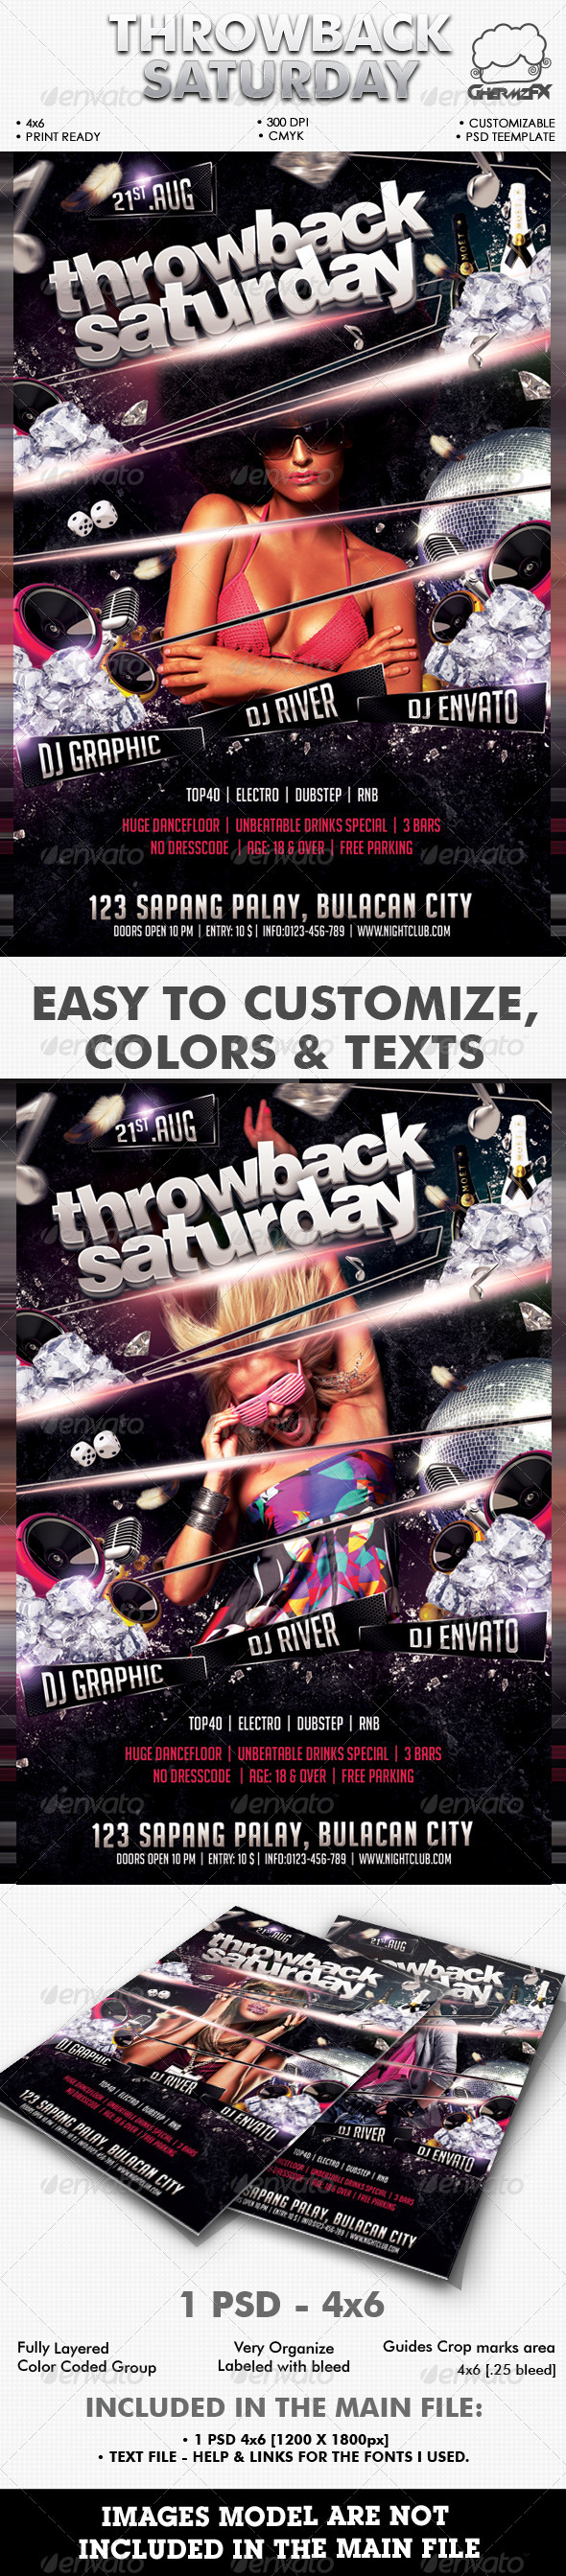 Throwback Saturday Flyer Template - Events Flyers